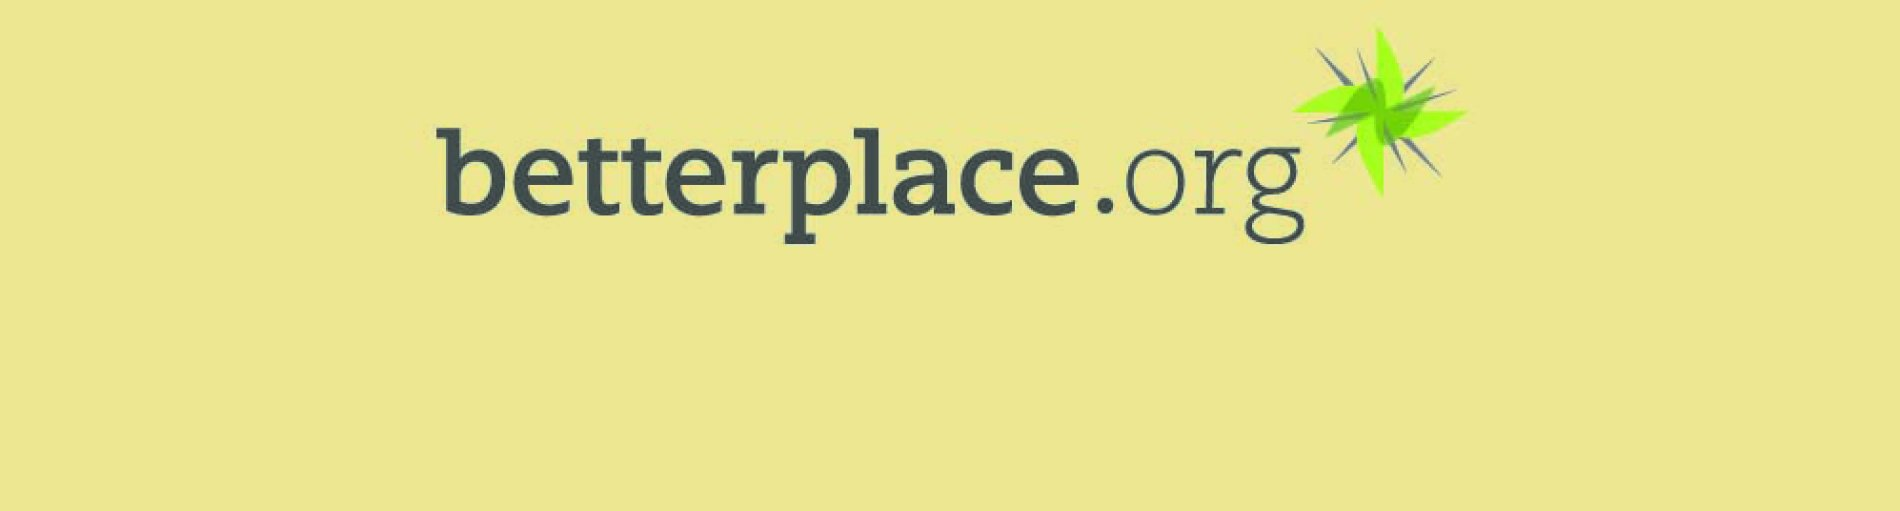 Das Logo der Spendenplattform betterplace.org; Quelle: betterplace.org